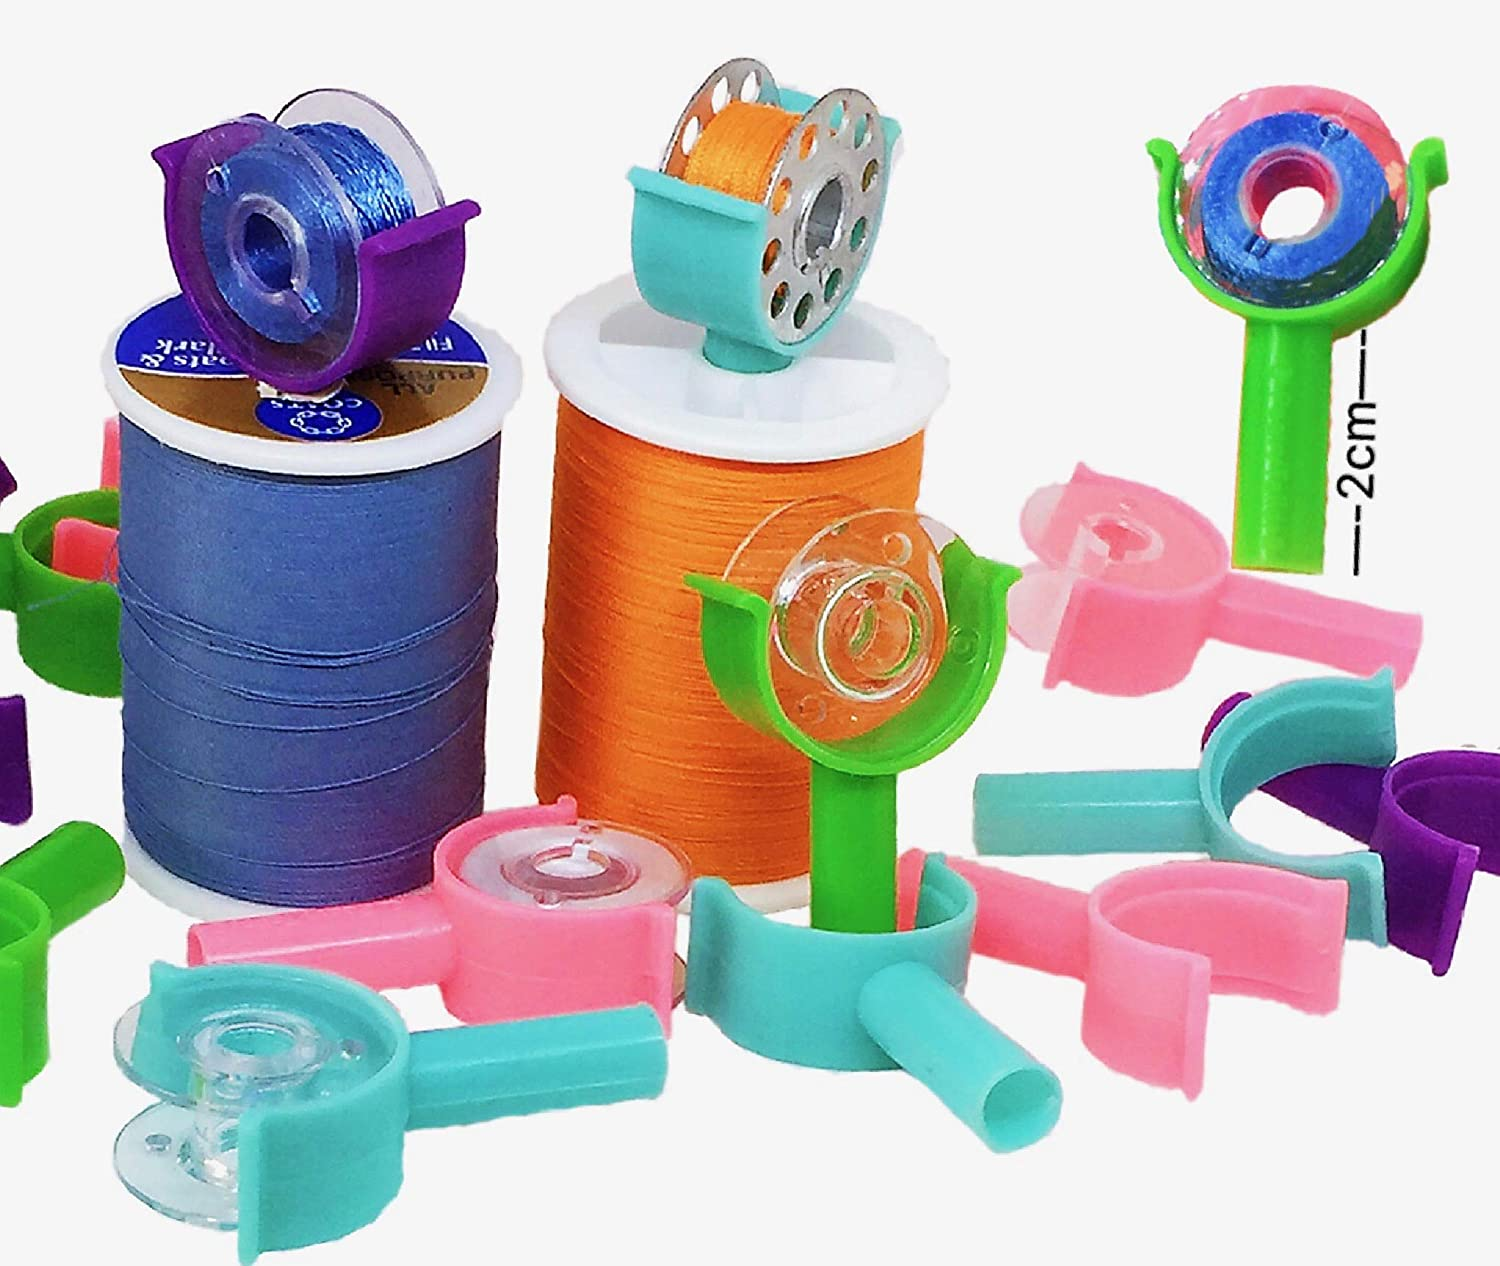 PeavyTailor 50 Pcs Bobbin Holders Clamps Bobbin Buddies Great for Embroidery Quilting and Sewing Thread Sewing Machine.